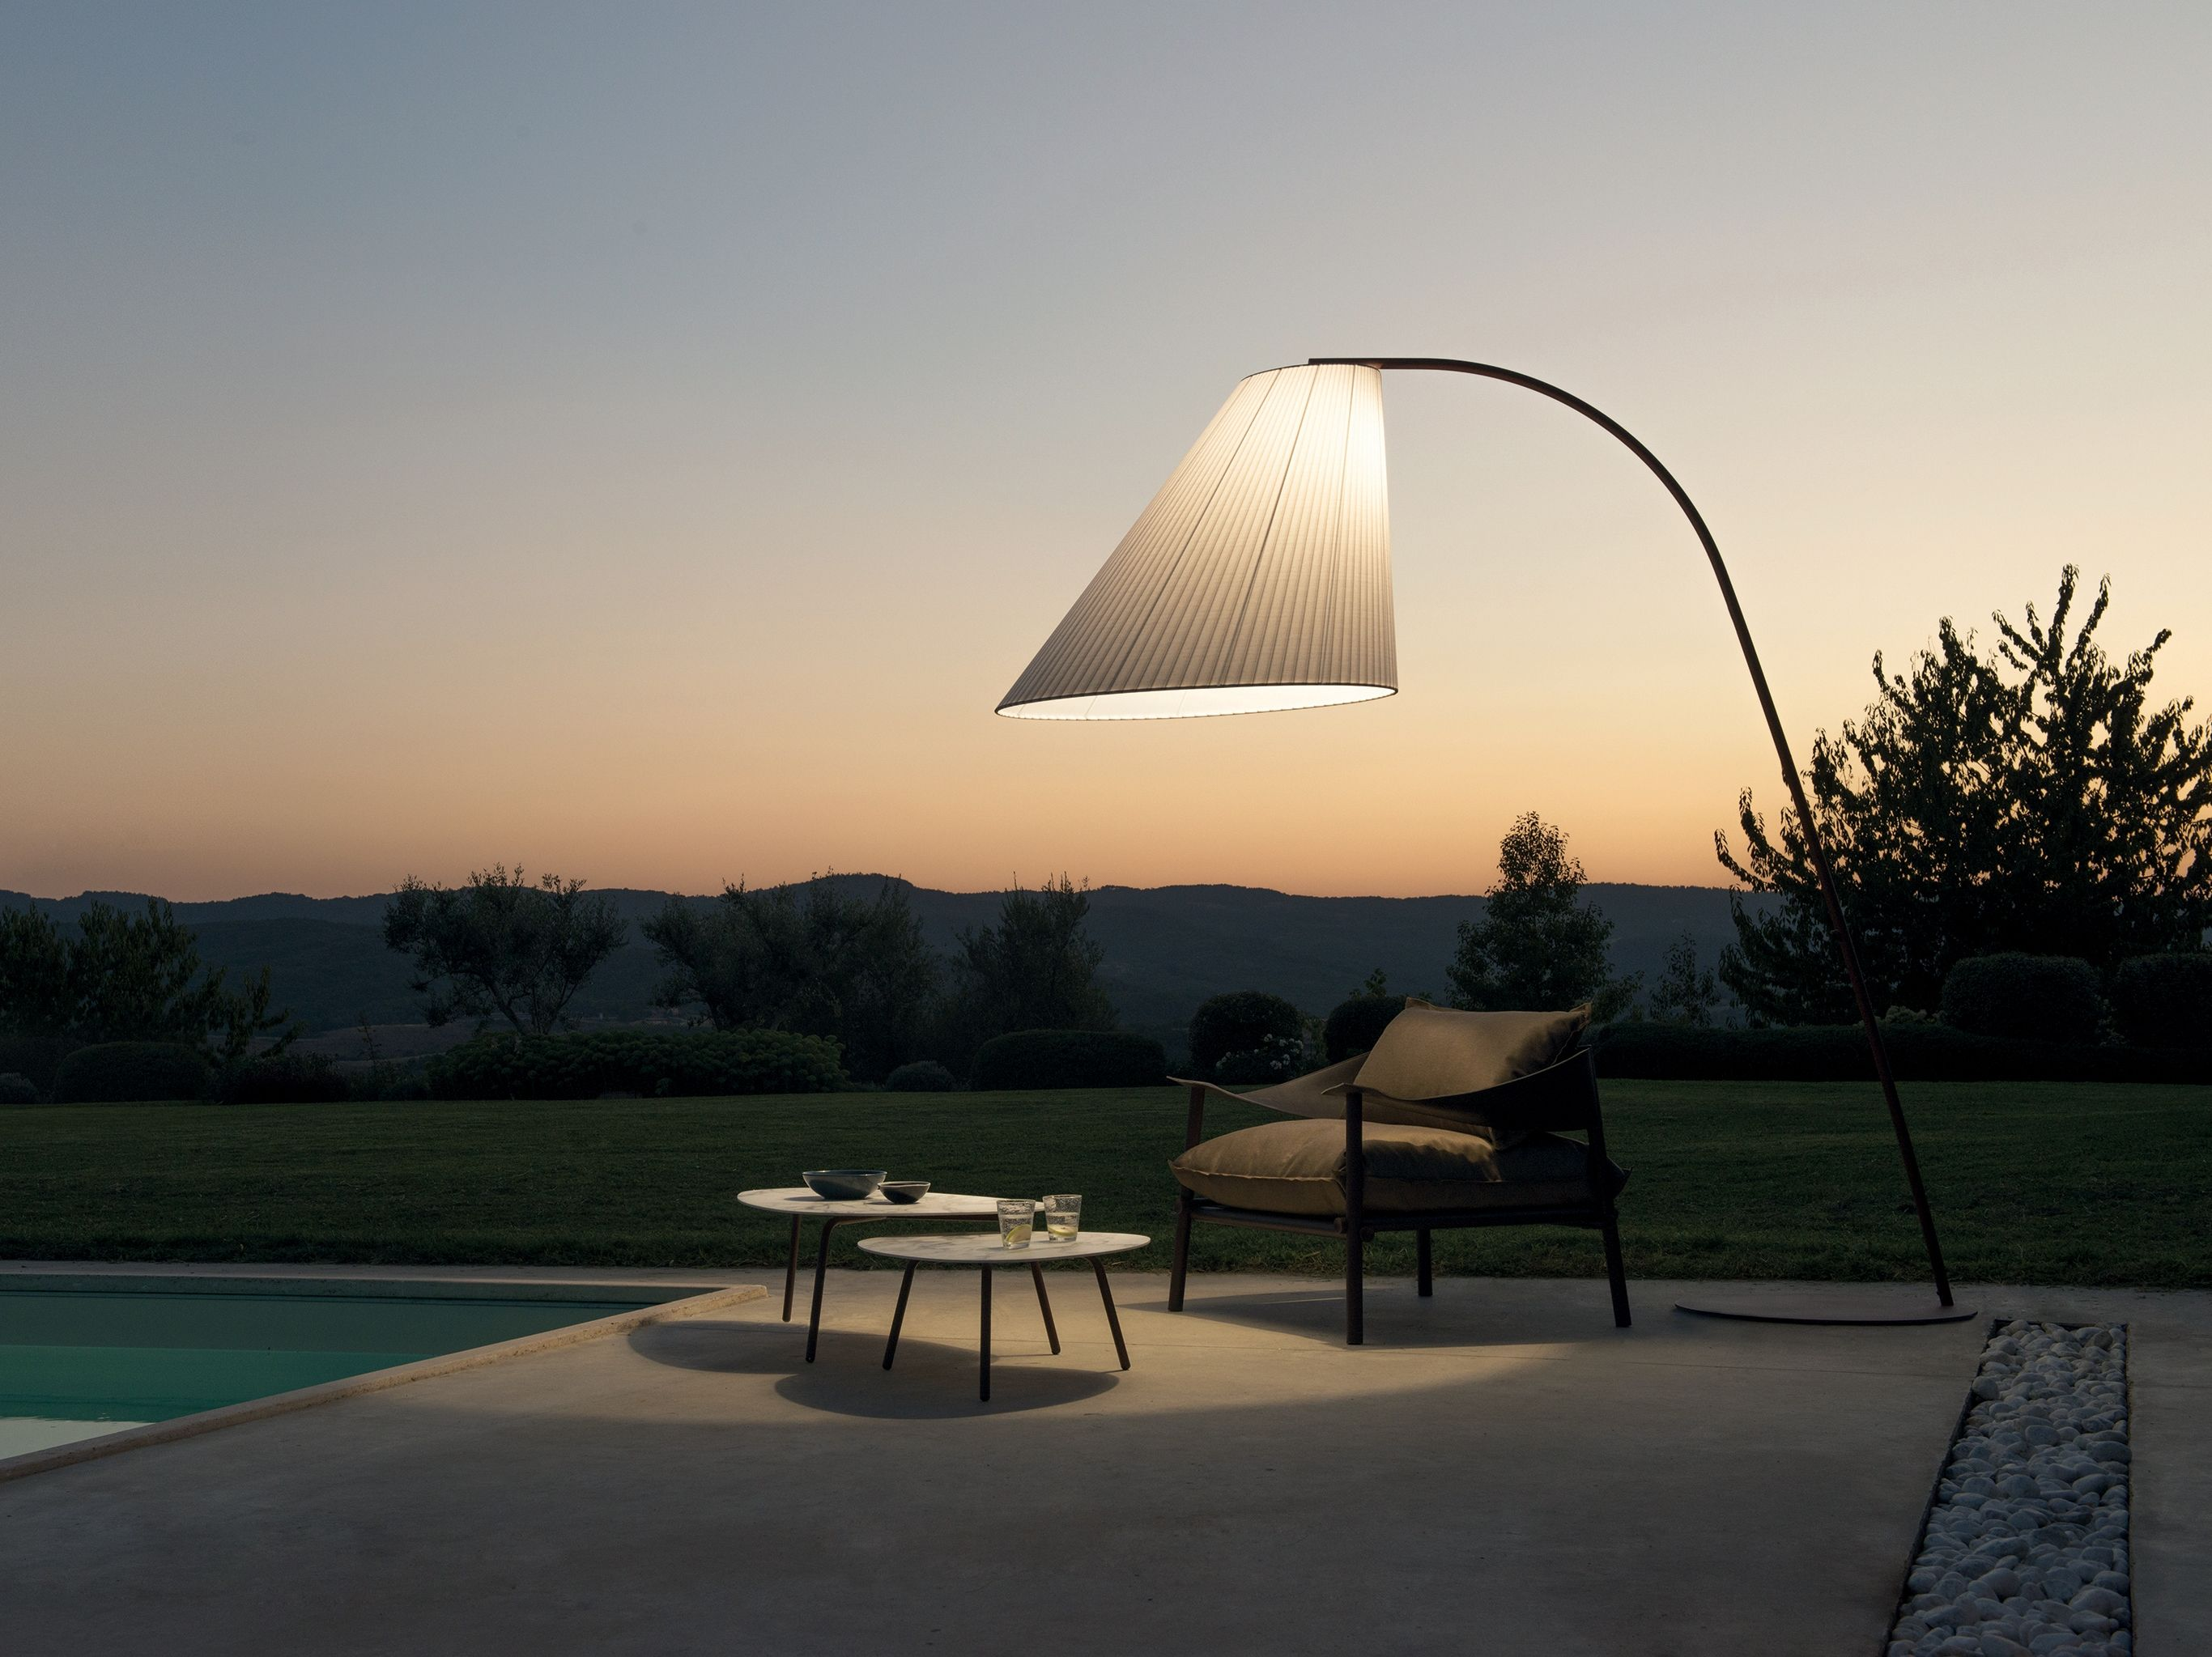 Cone Outdoor Arc Lamp Cone Collection By Emu Design Chiaramonte Marin Outdoor Floor Lamps Outdoor Lamp Arc Lamp